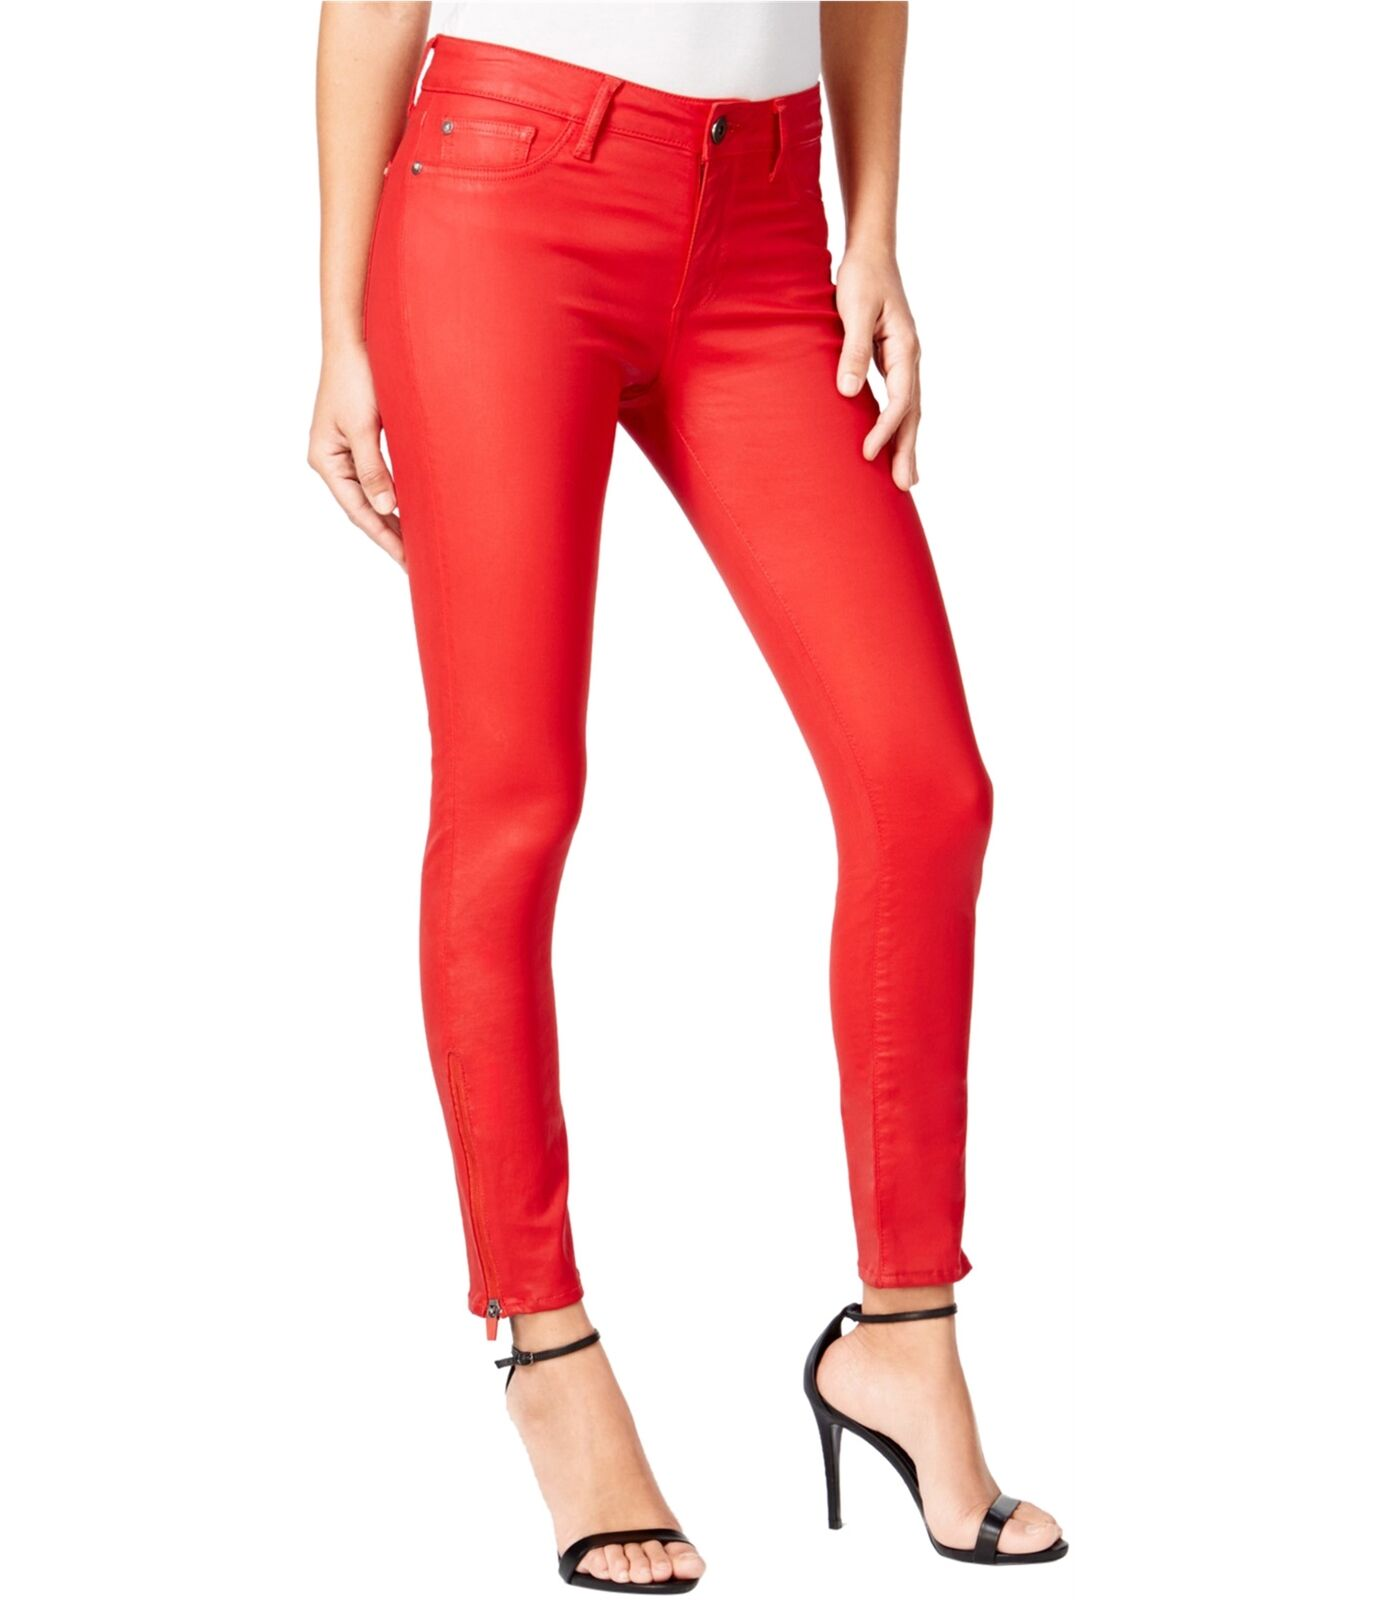 DL1961 Womens Instasculpt Skinny Fit Jeans fuego 27x27